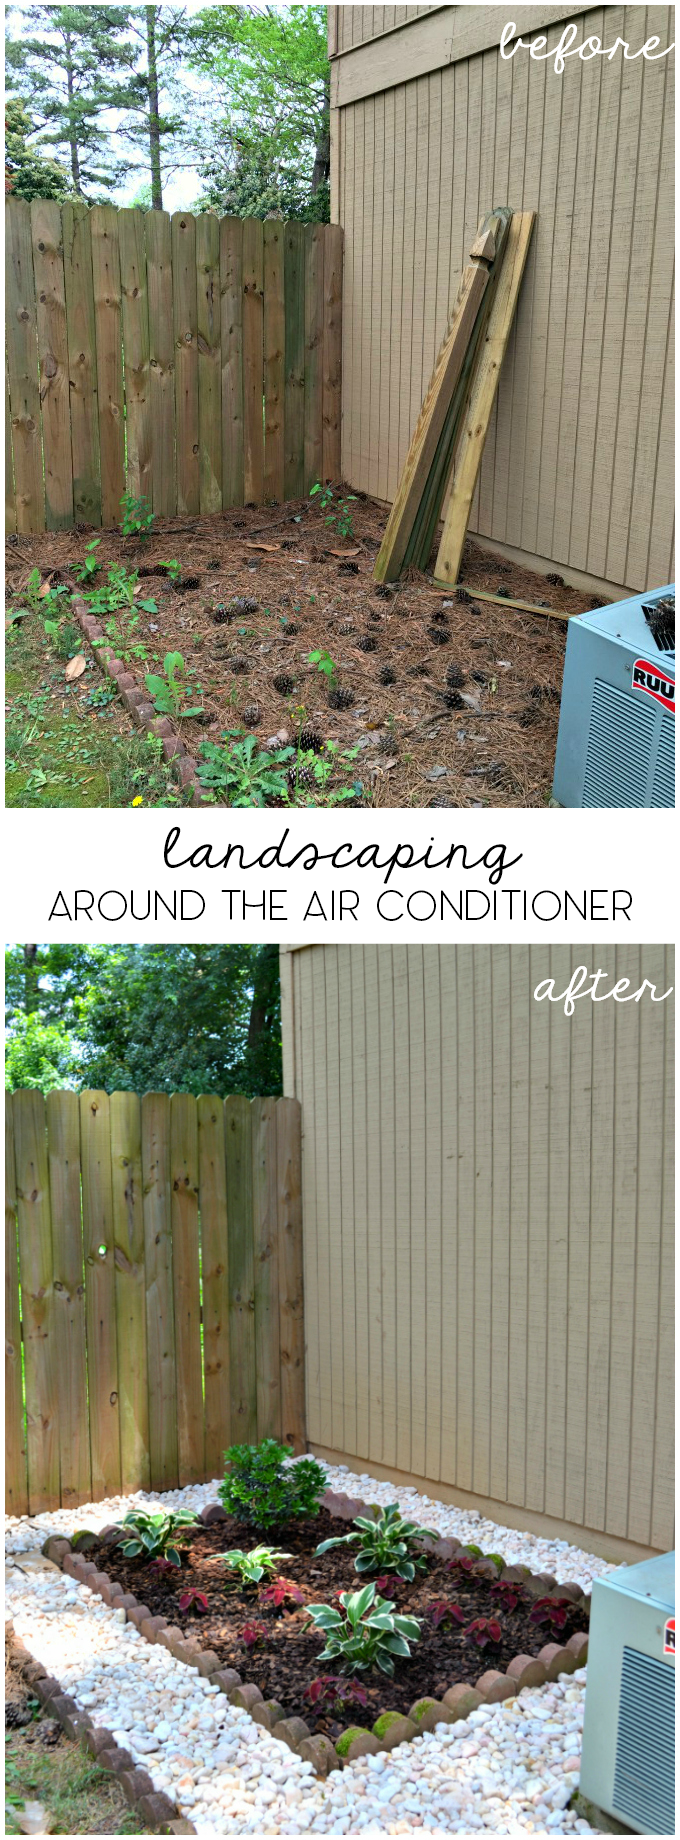 landscaping around AC unit before after